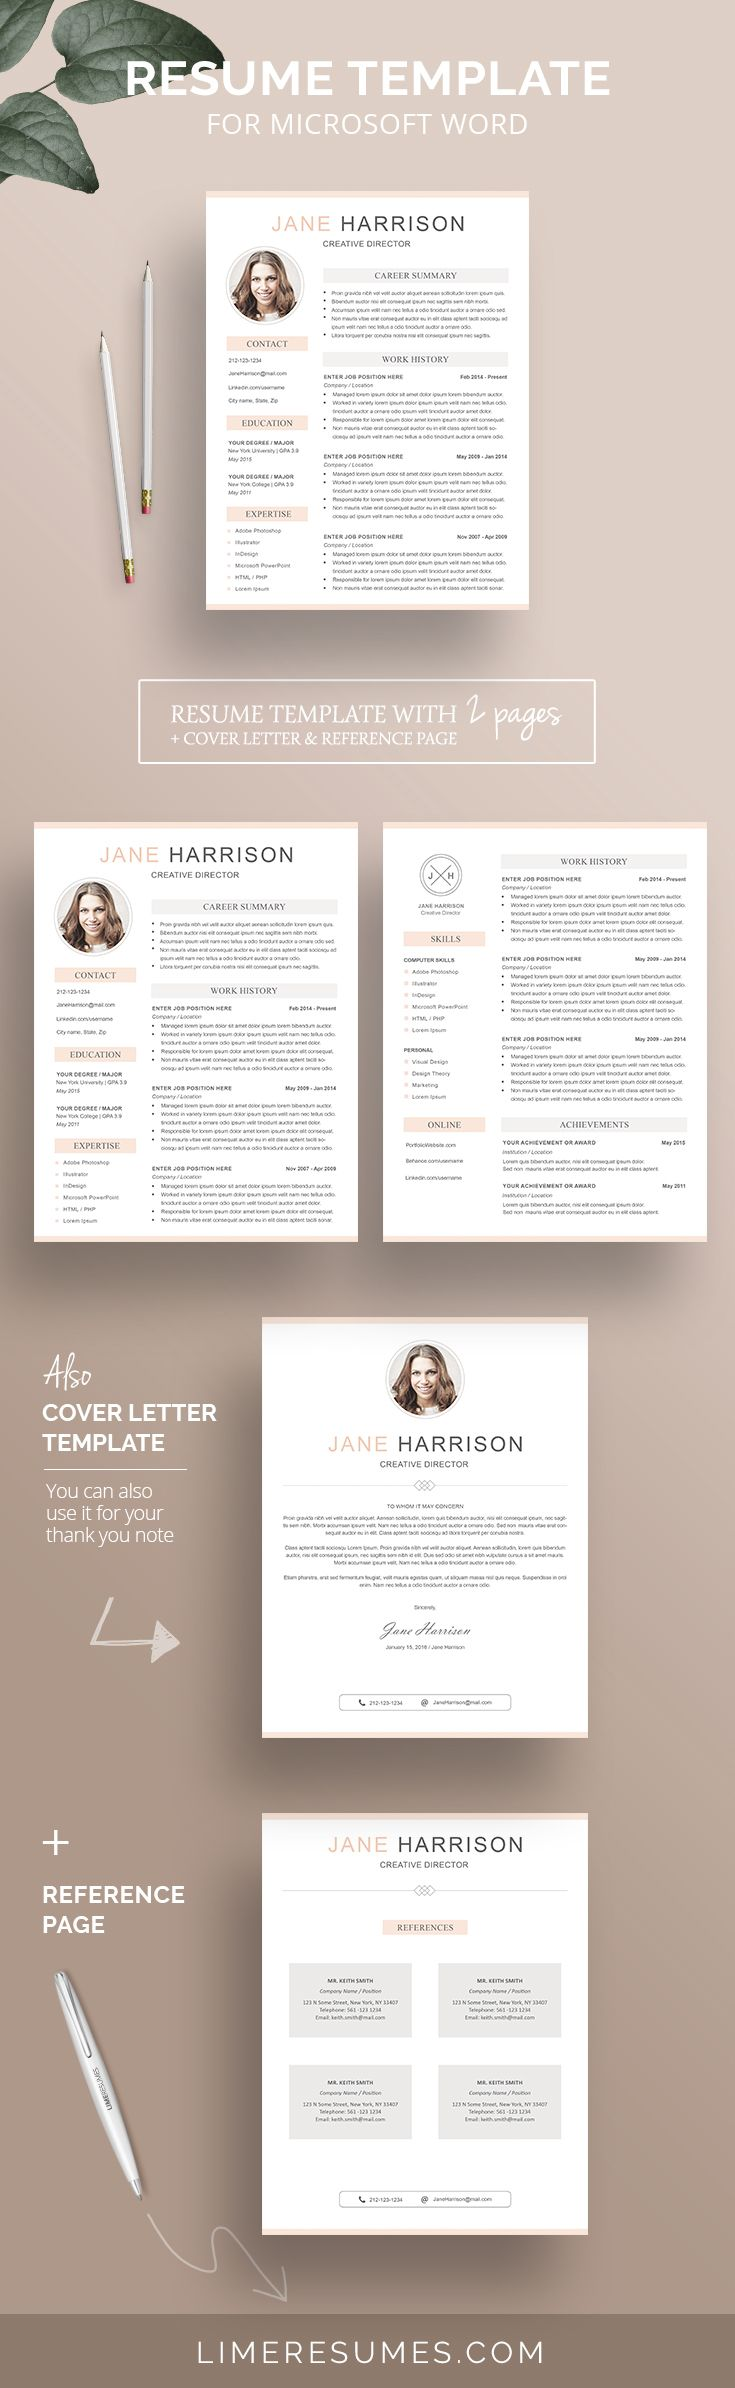 Resume Template With Photo  Photo Resume With  Pages  Modern